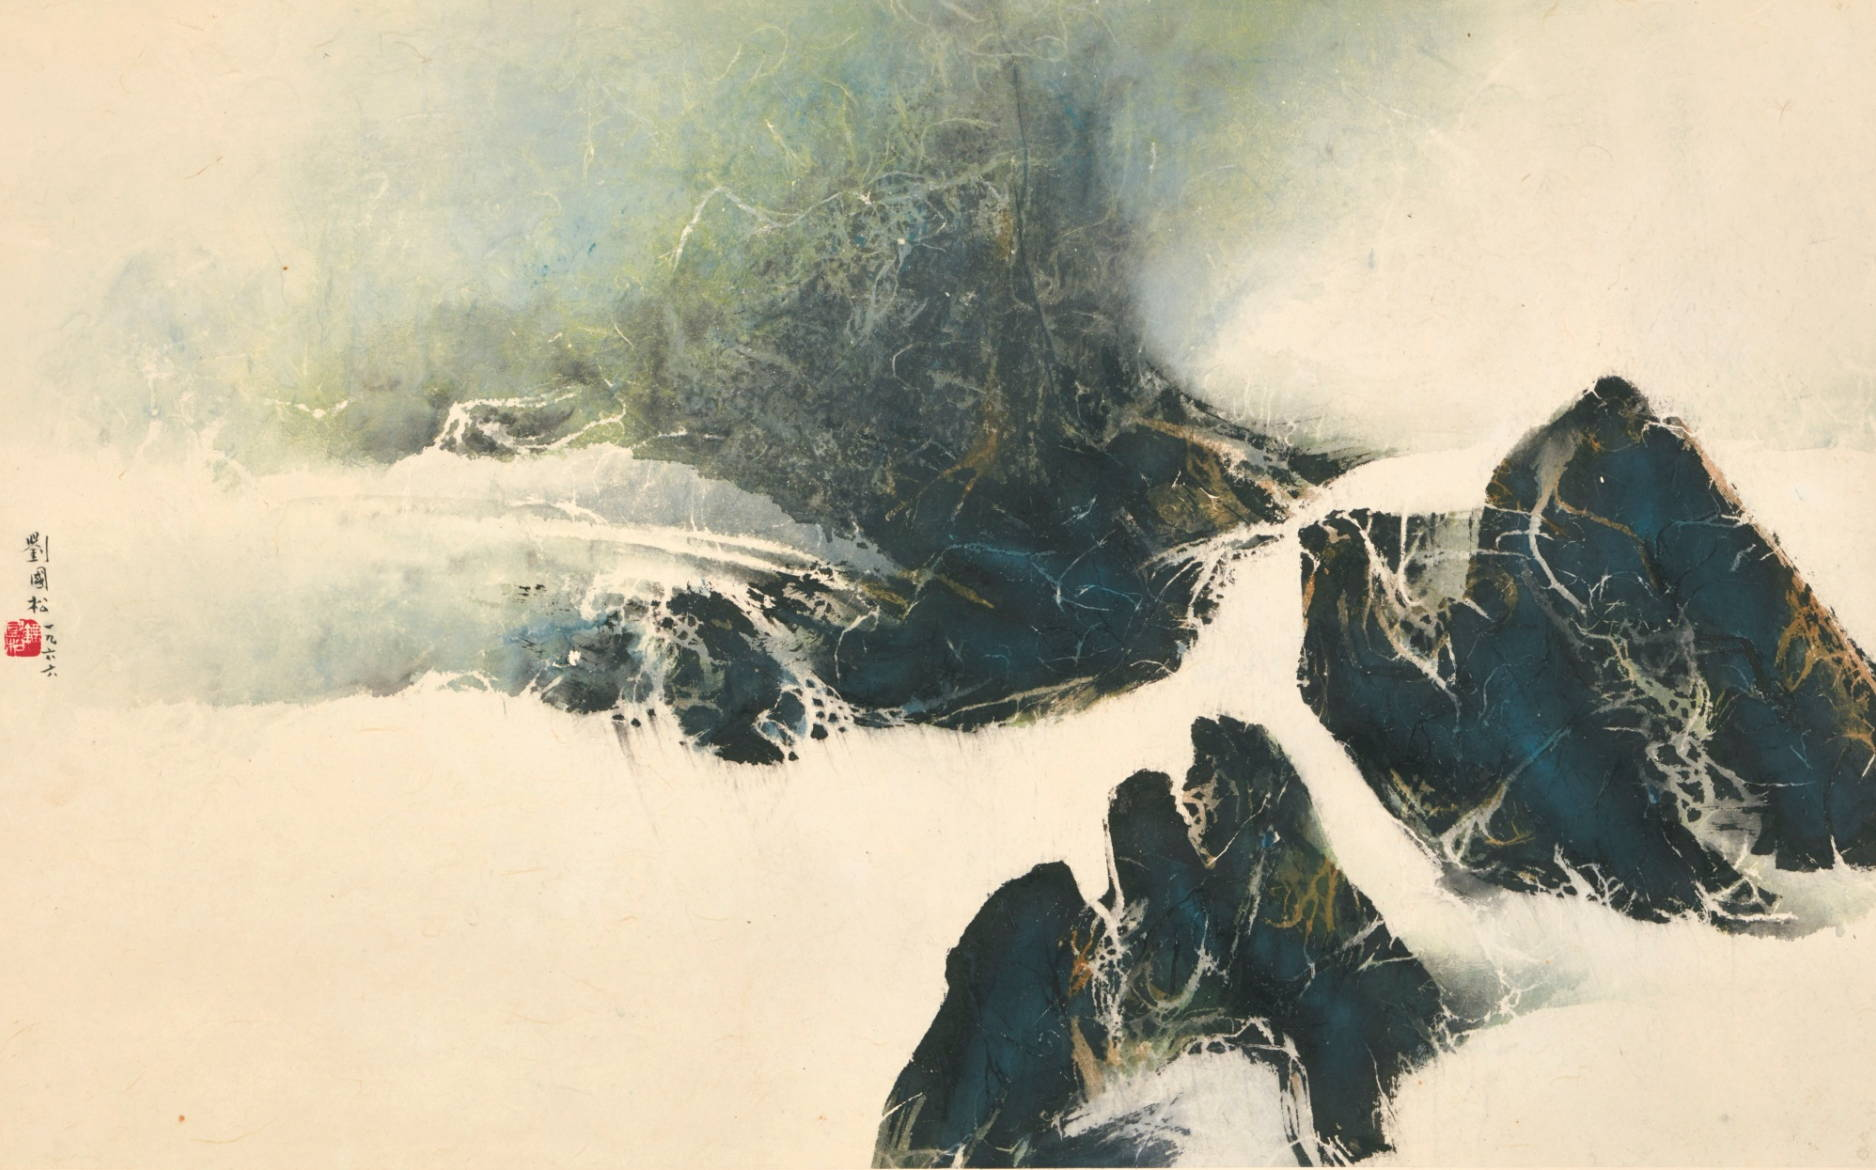 Ink landscape by Liu Kuo-Sung